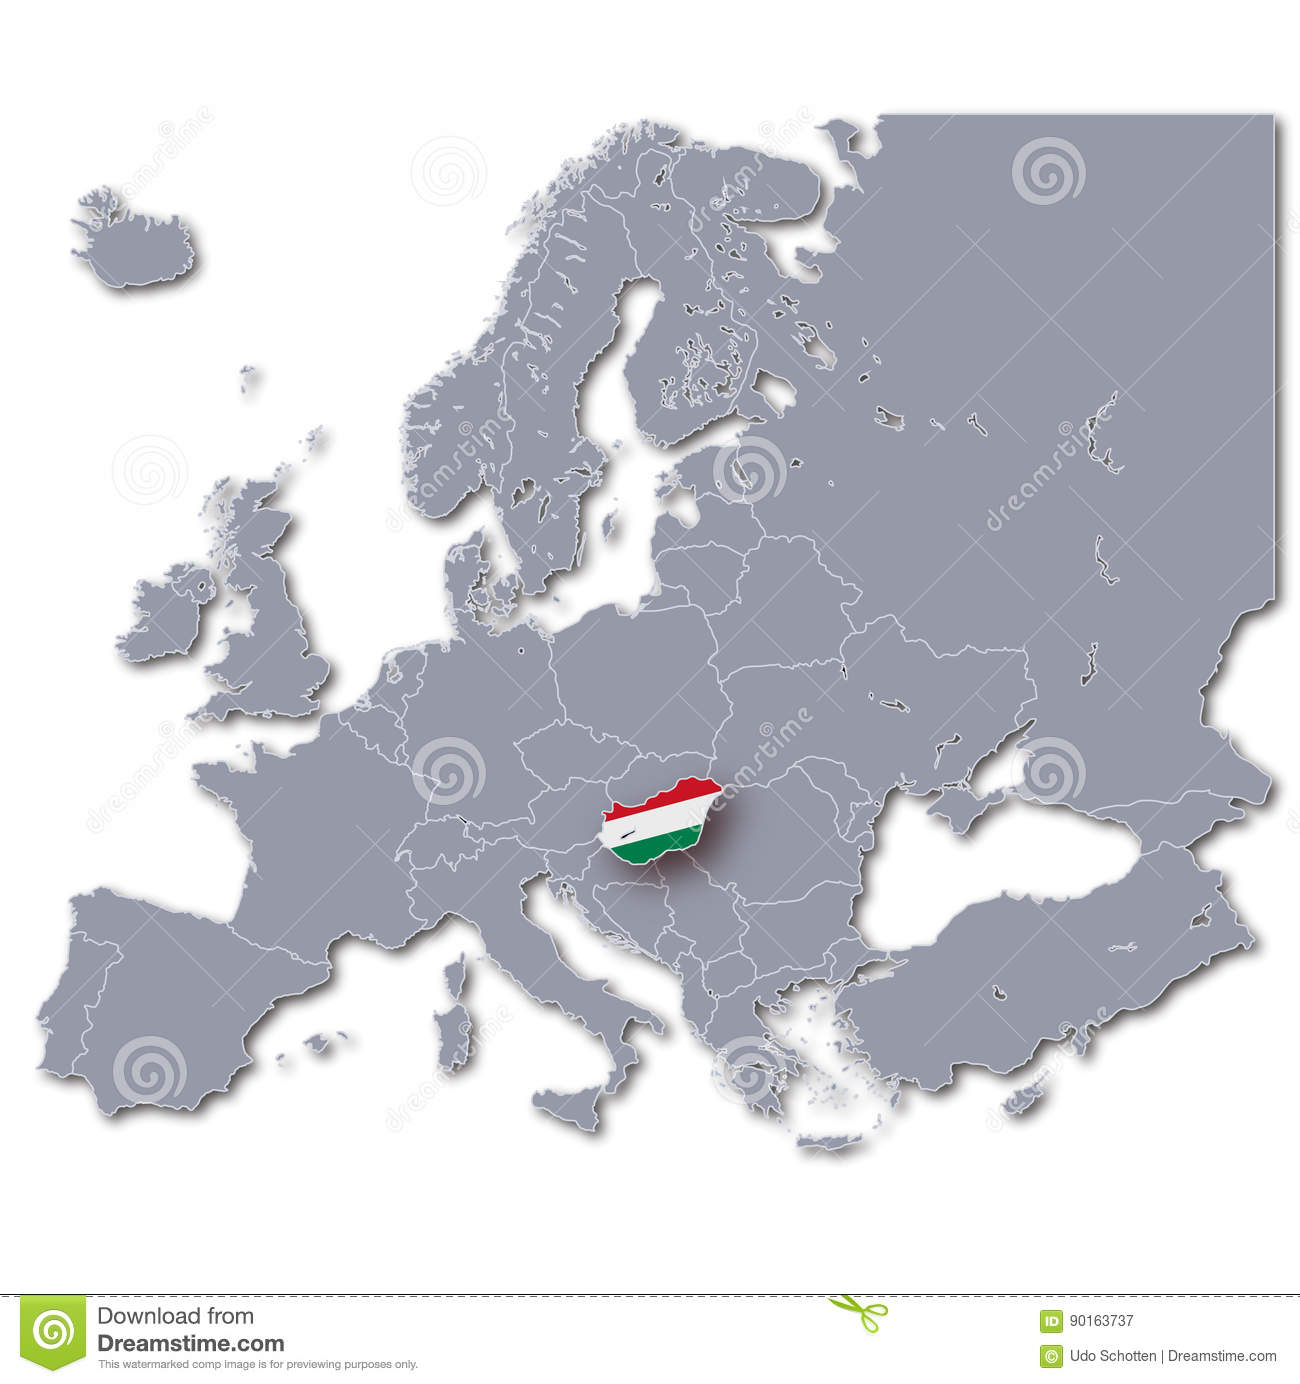 Picture of: Map Of Europe With Hungary Stock Illustration Illustration Of Republic 90163737